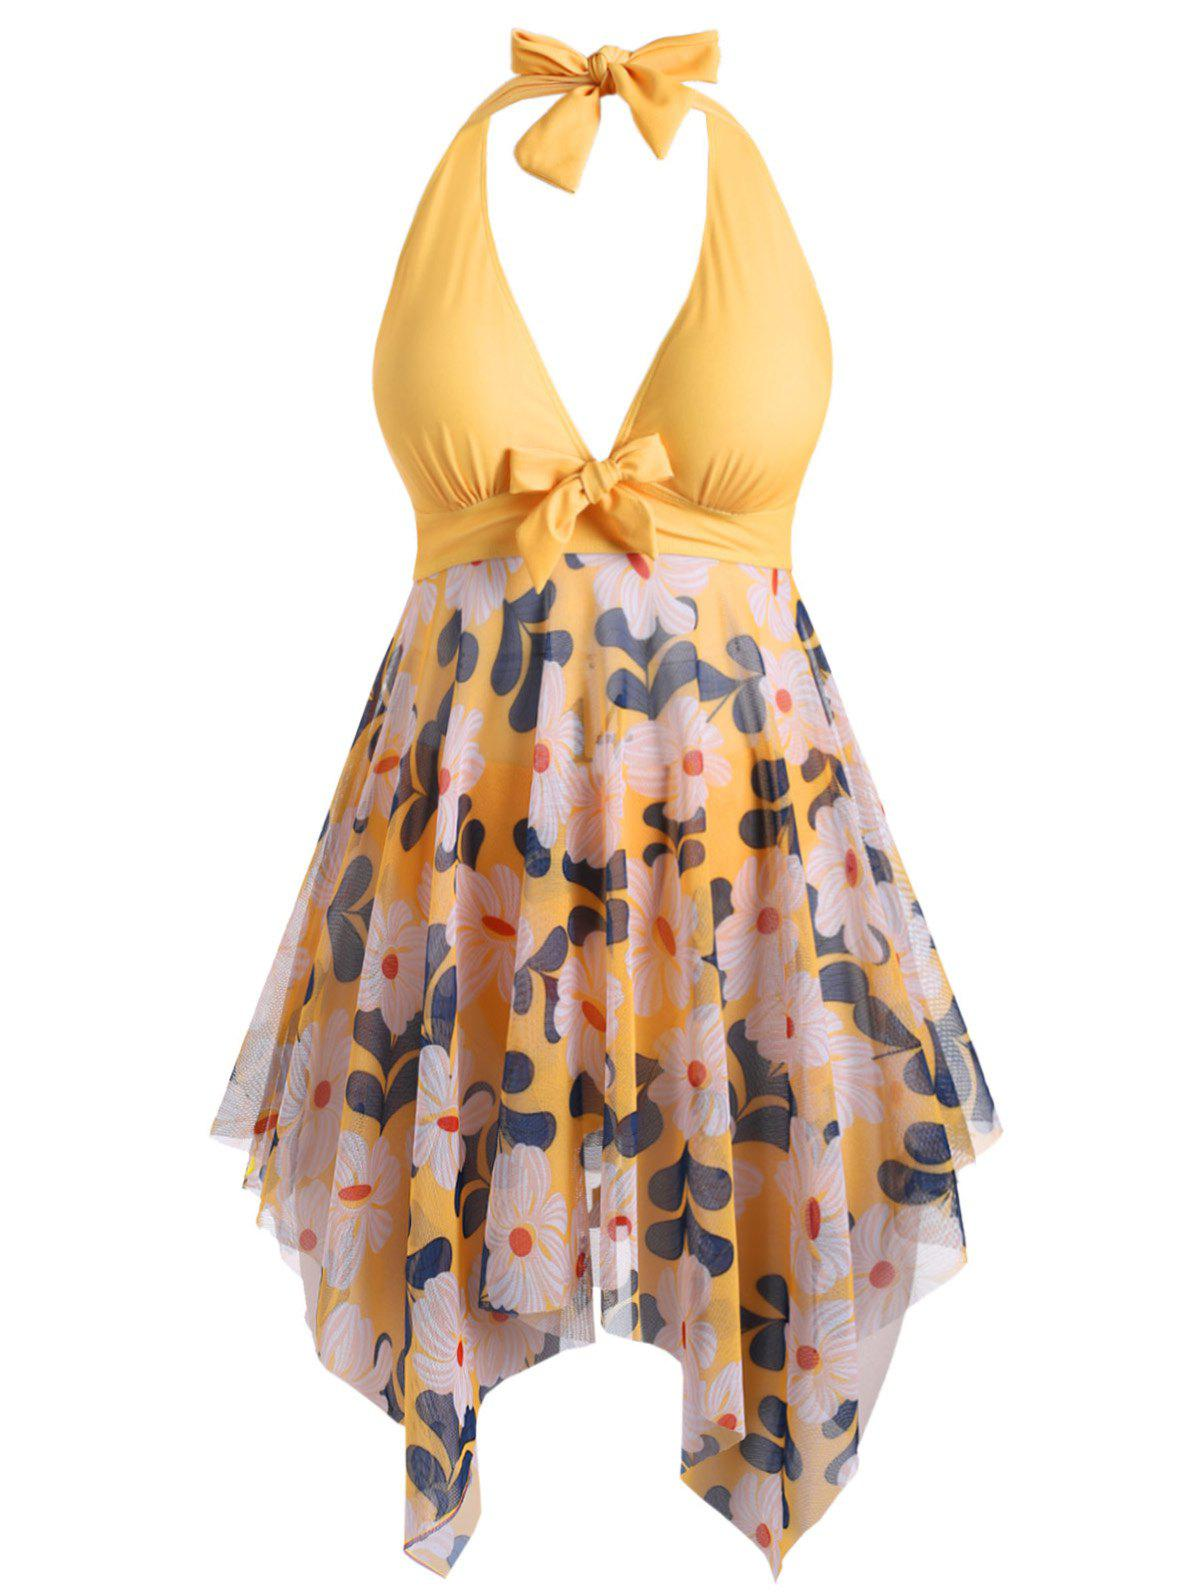 Plus Size Halter Low Cut Floral Print Handkerchief Tankini Swimsuit - YELLOW 5X